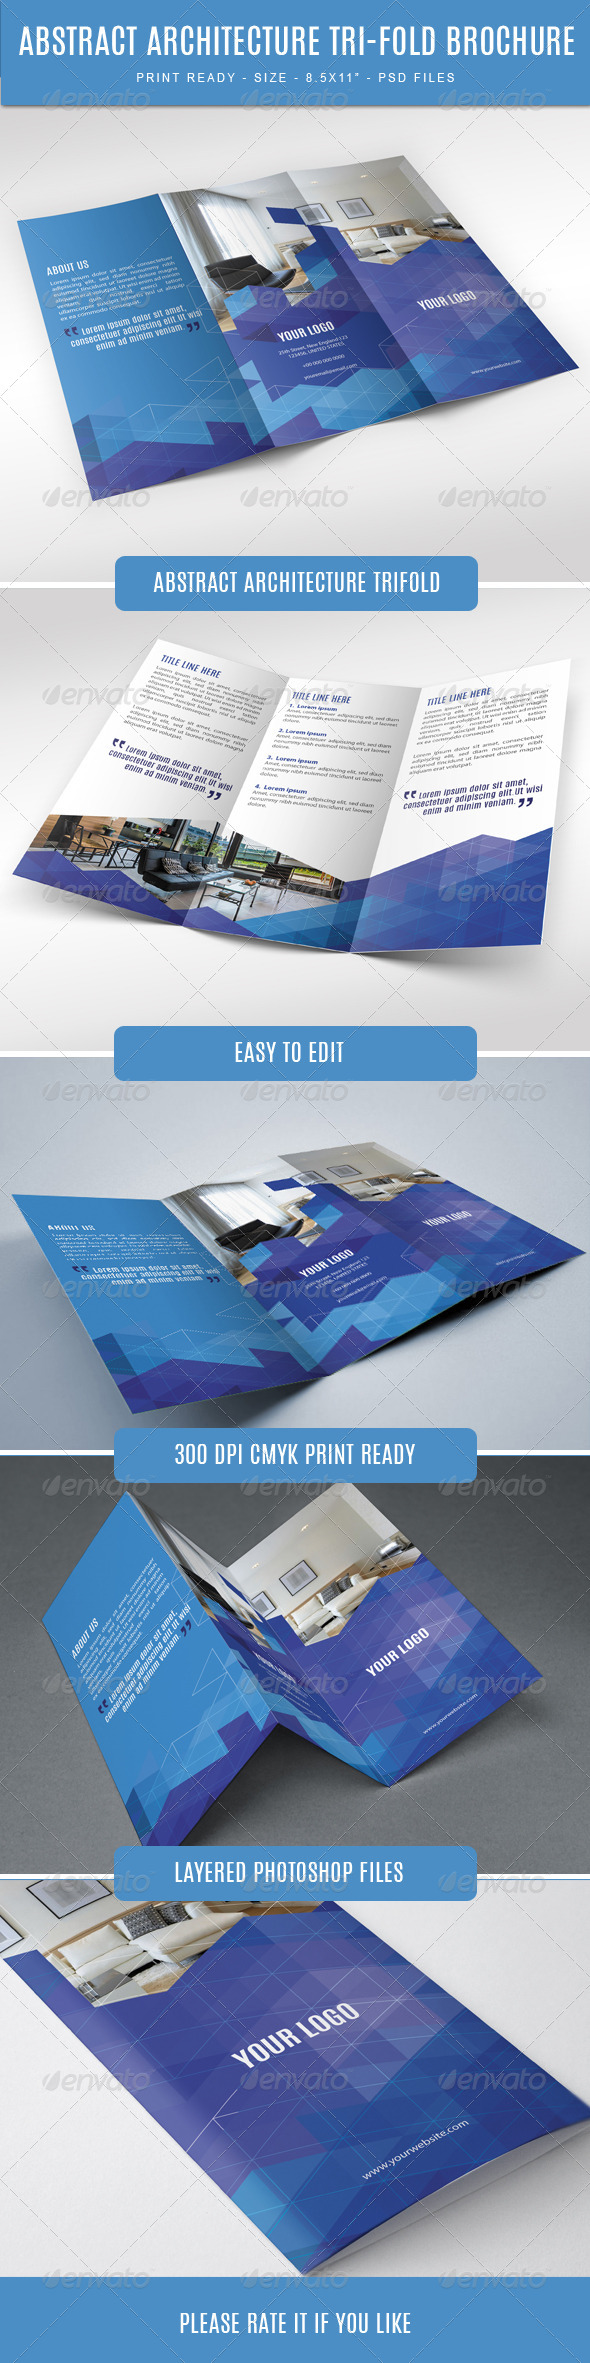 GraphicRiver Abstract Architecture Modern Trifold 7661332